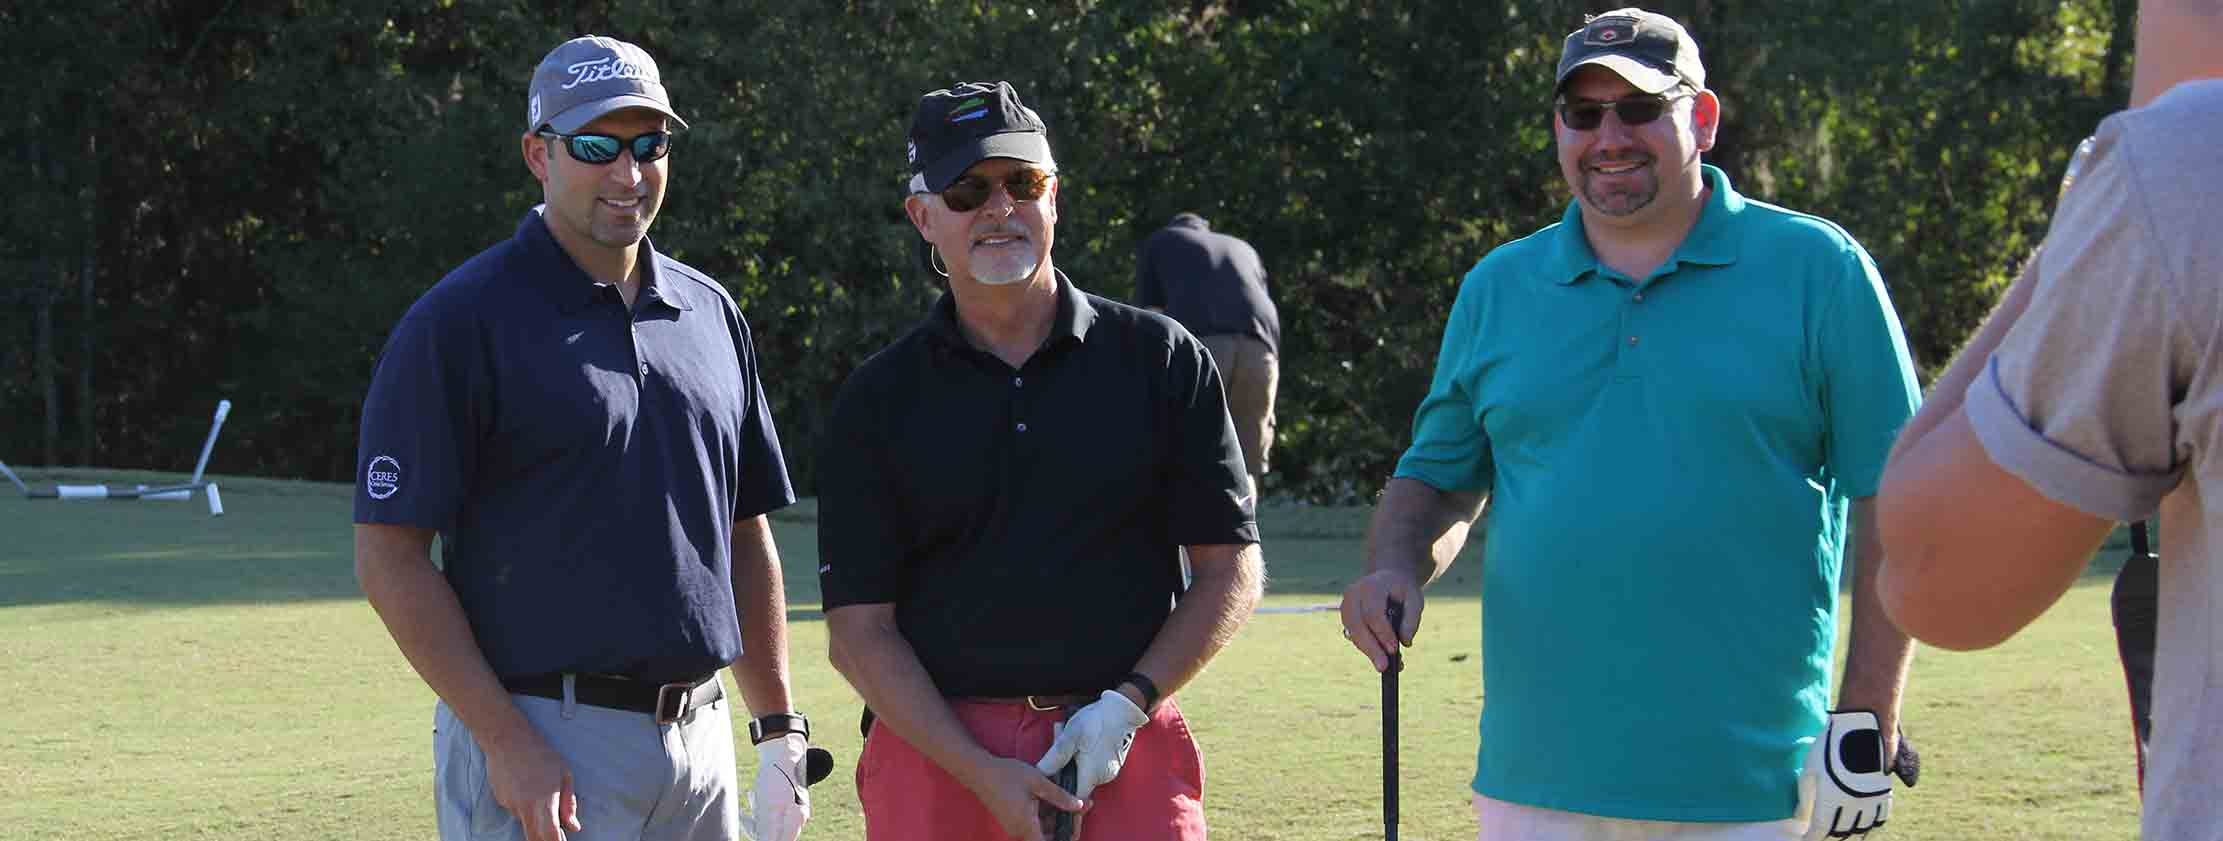 freeport texas golf tournament